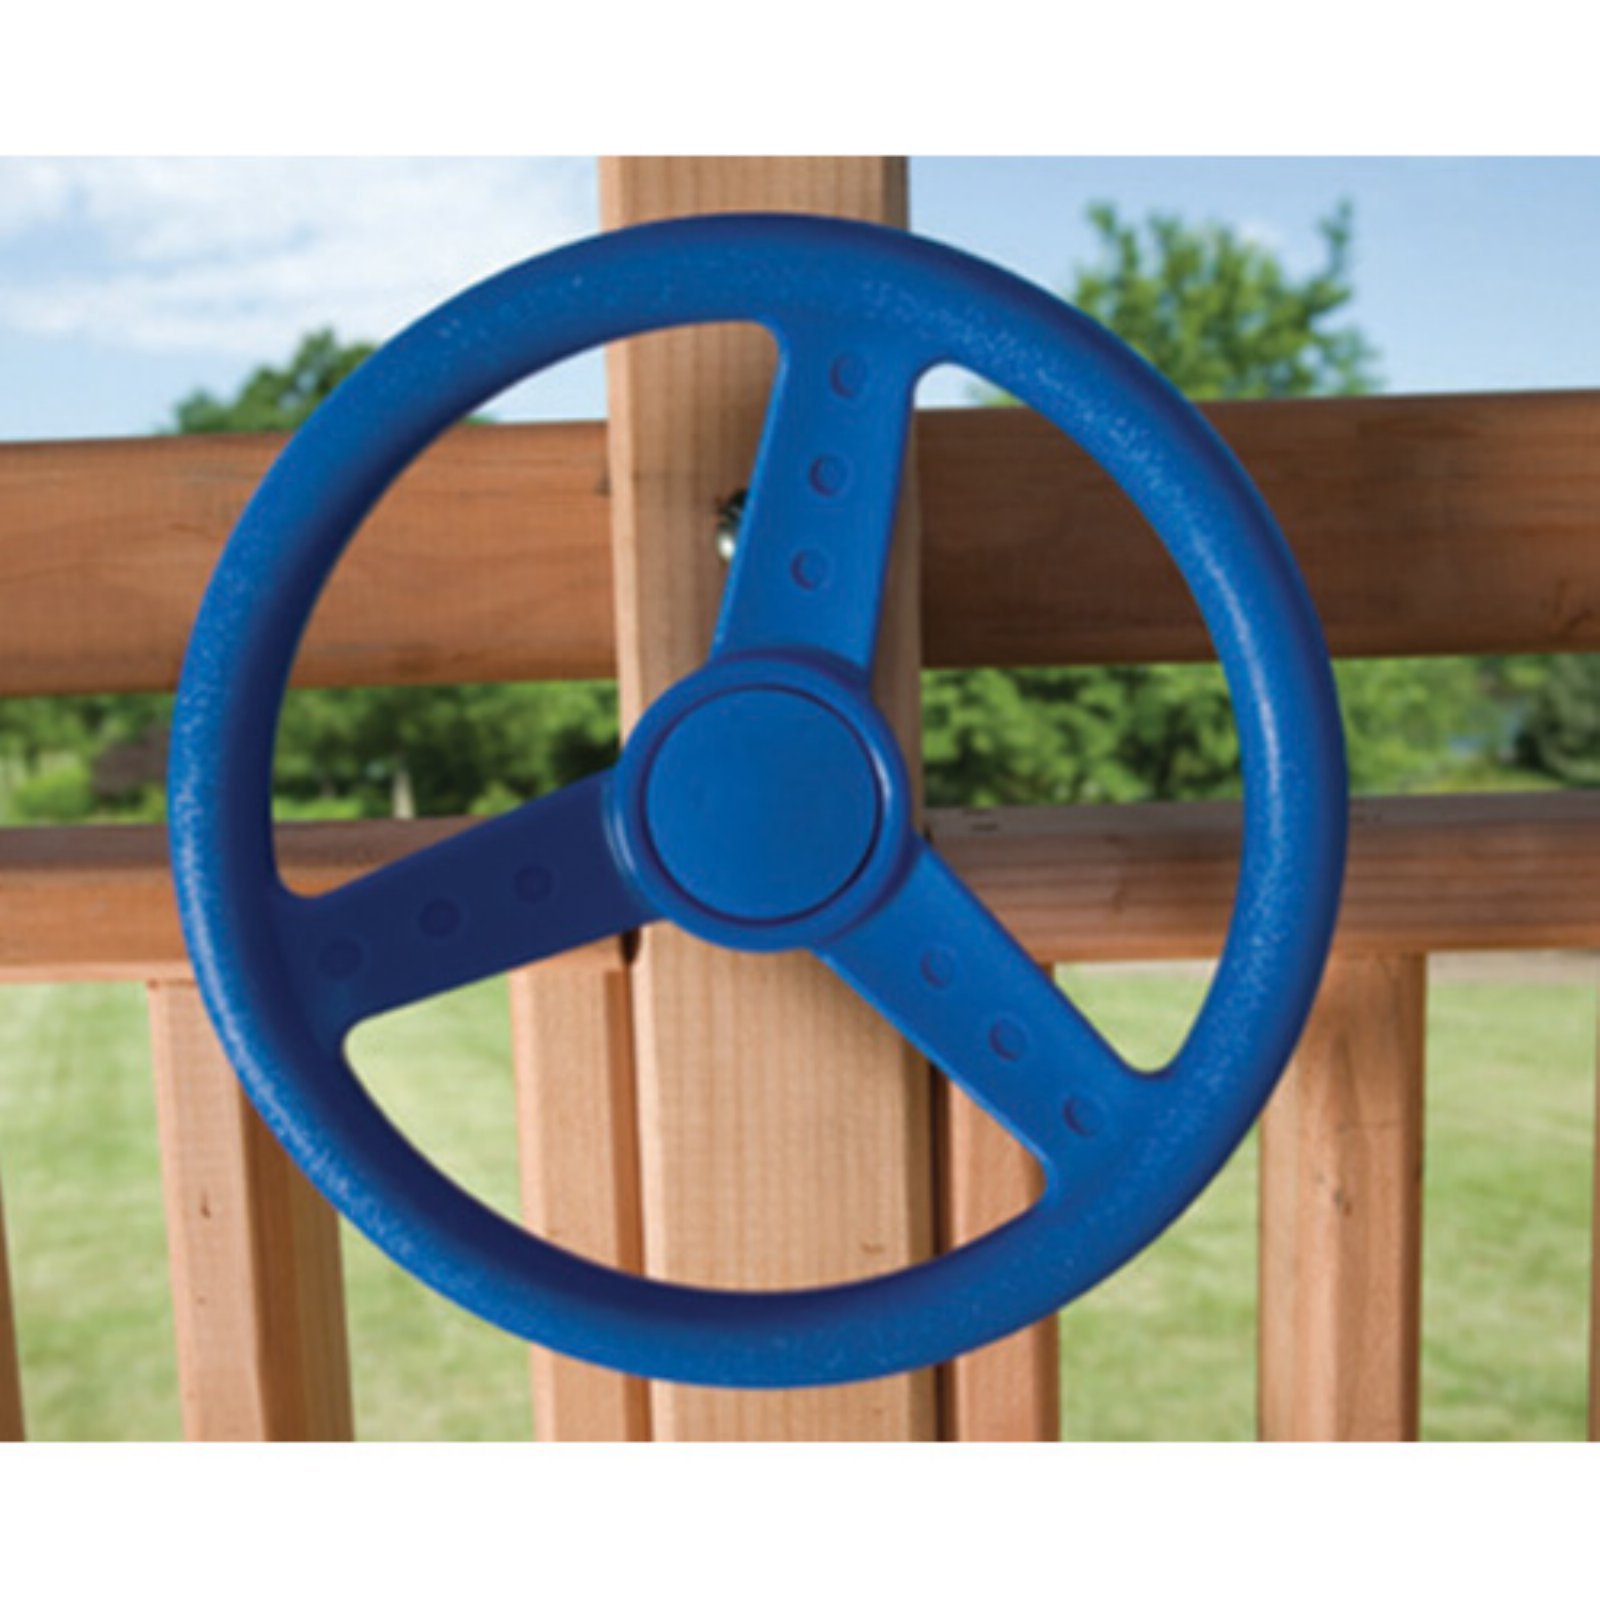 Kids Creations Blue Steering Wheel